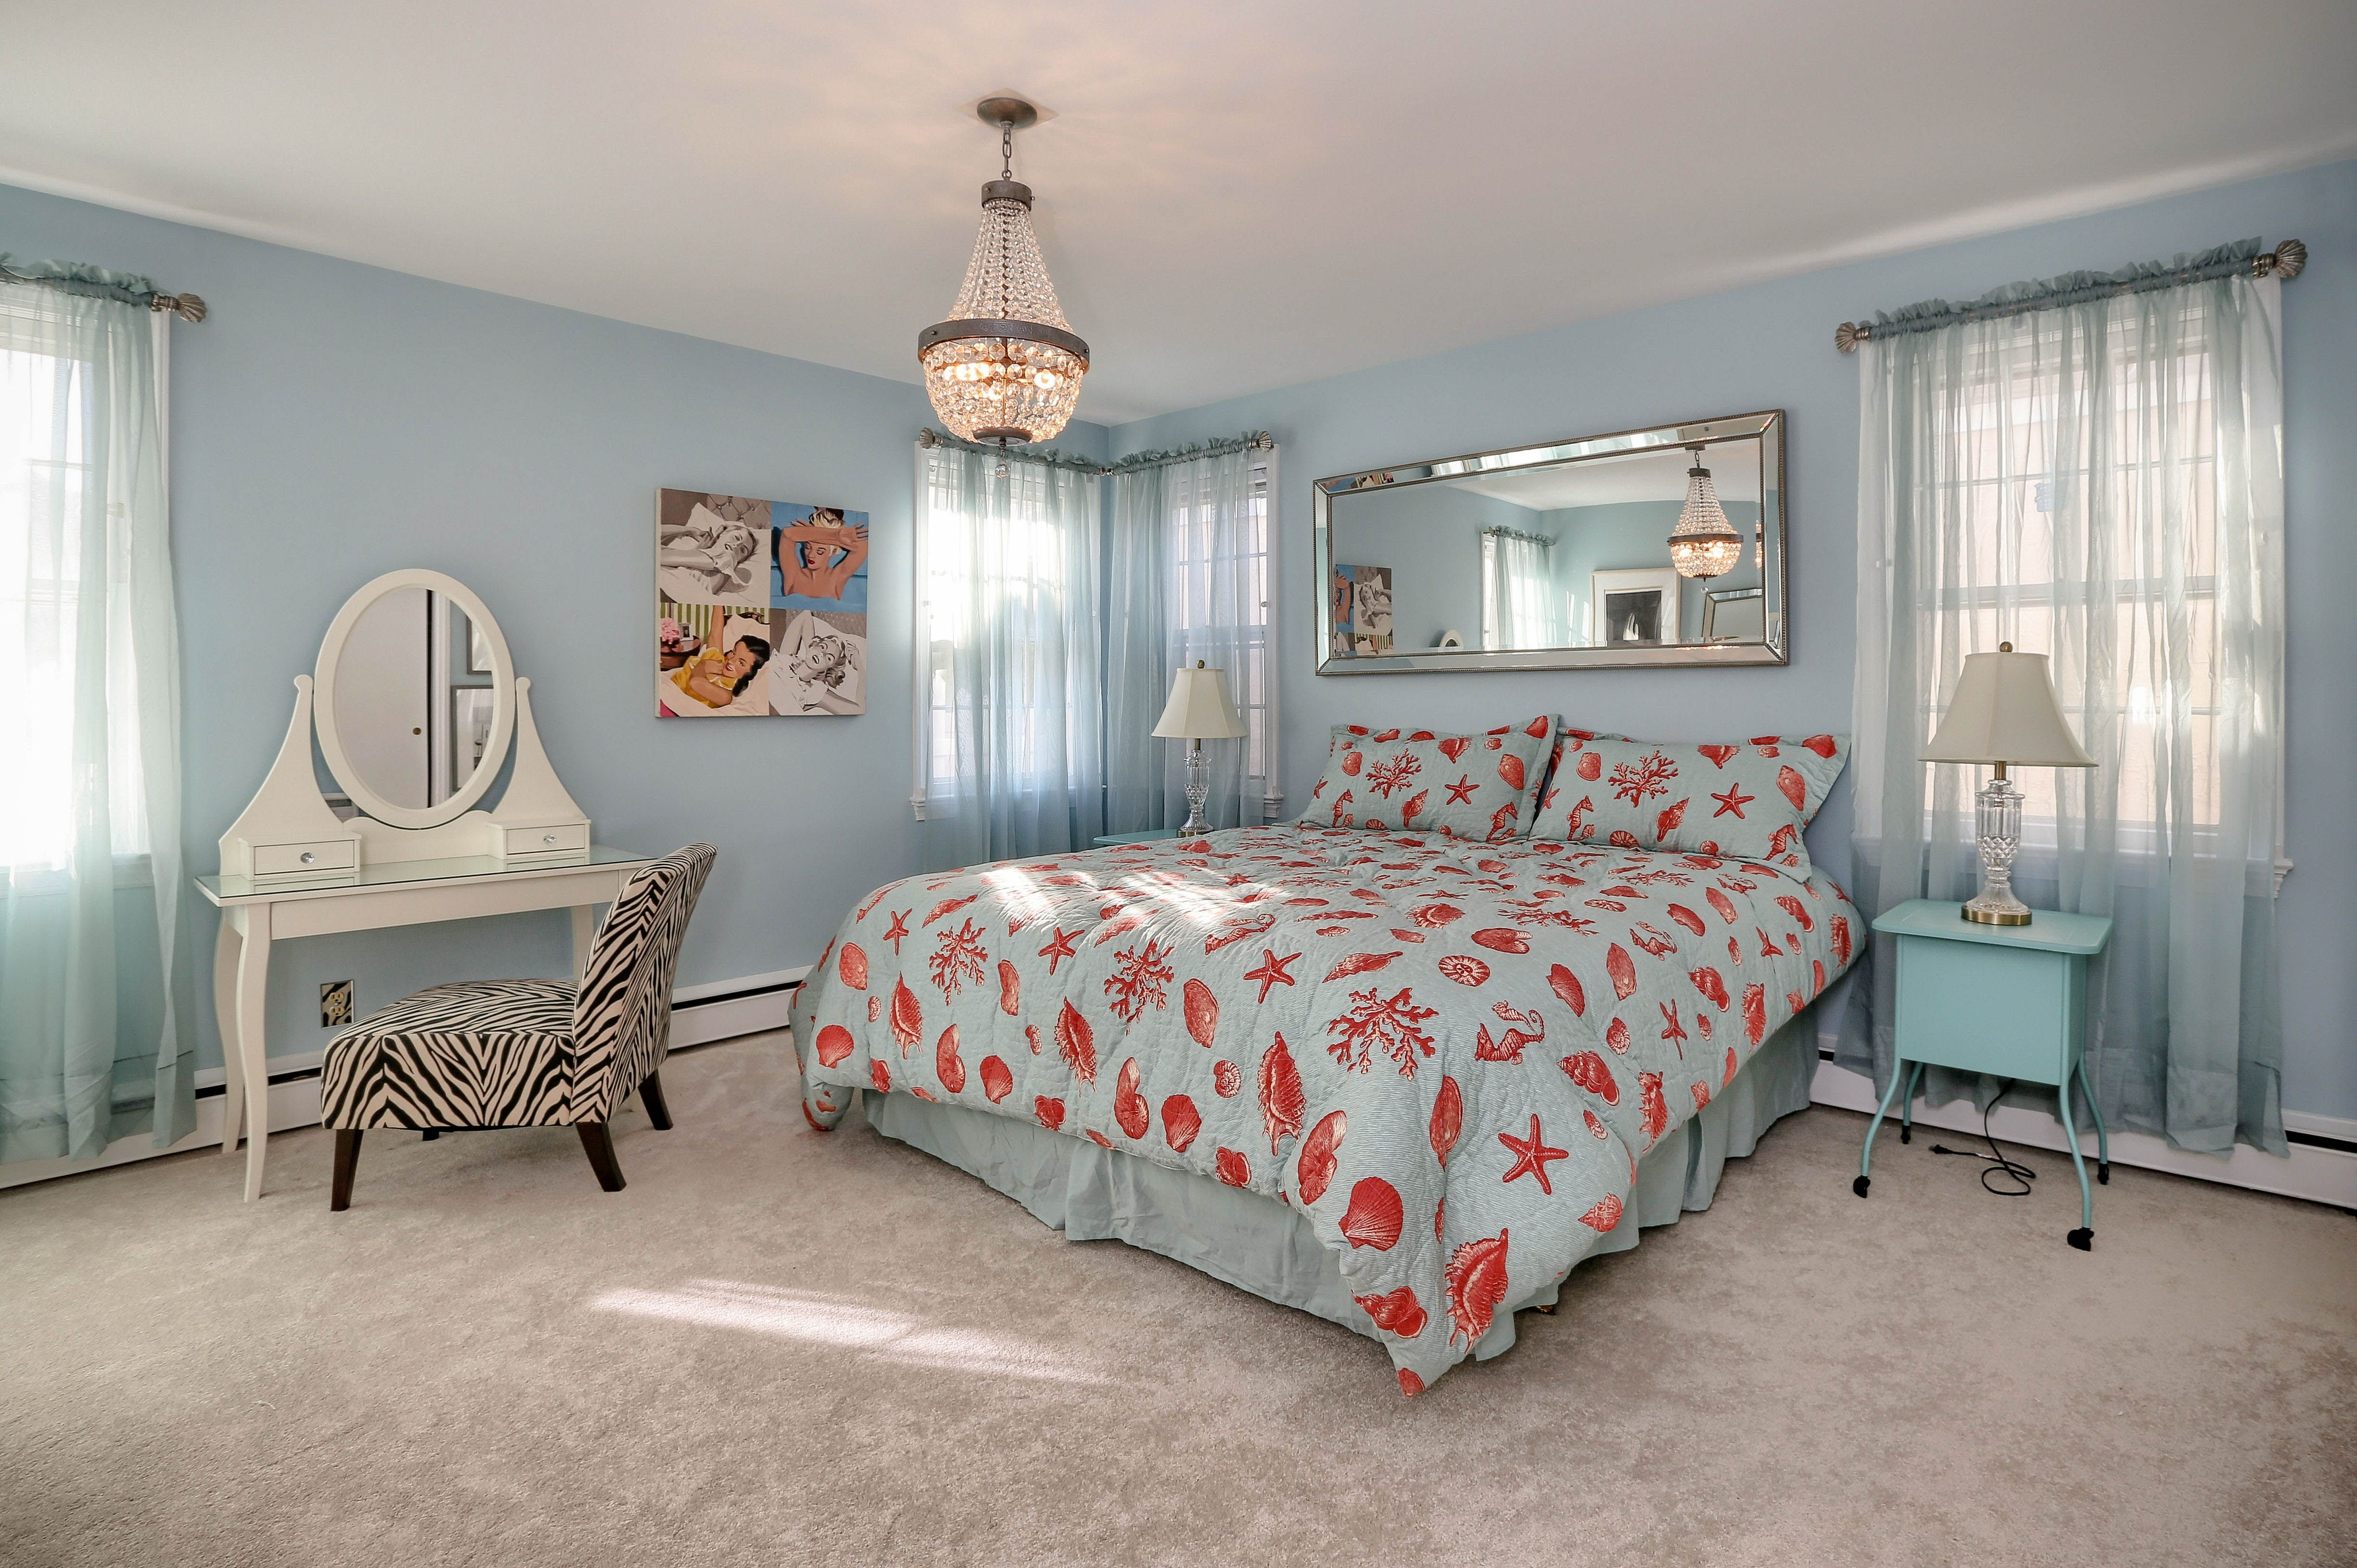 A Beautiful Blue Beach Themed Bedroom At The South Jersey Shore 8